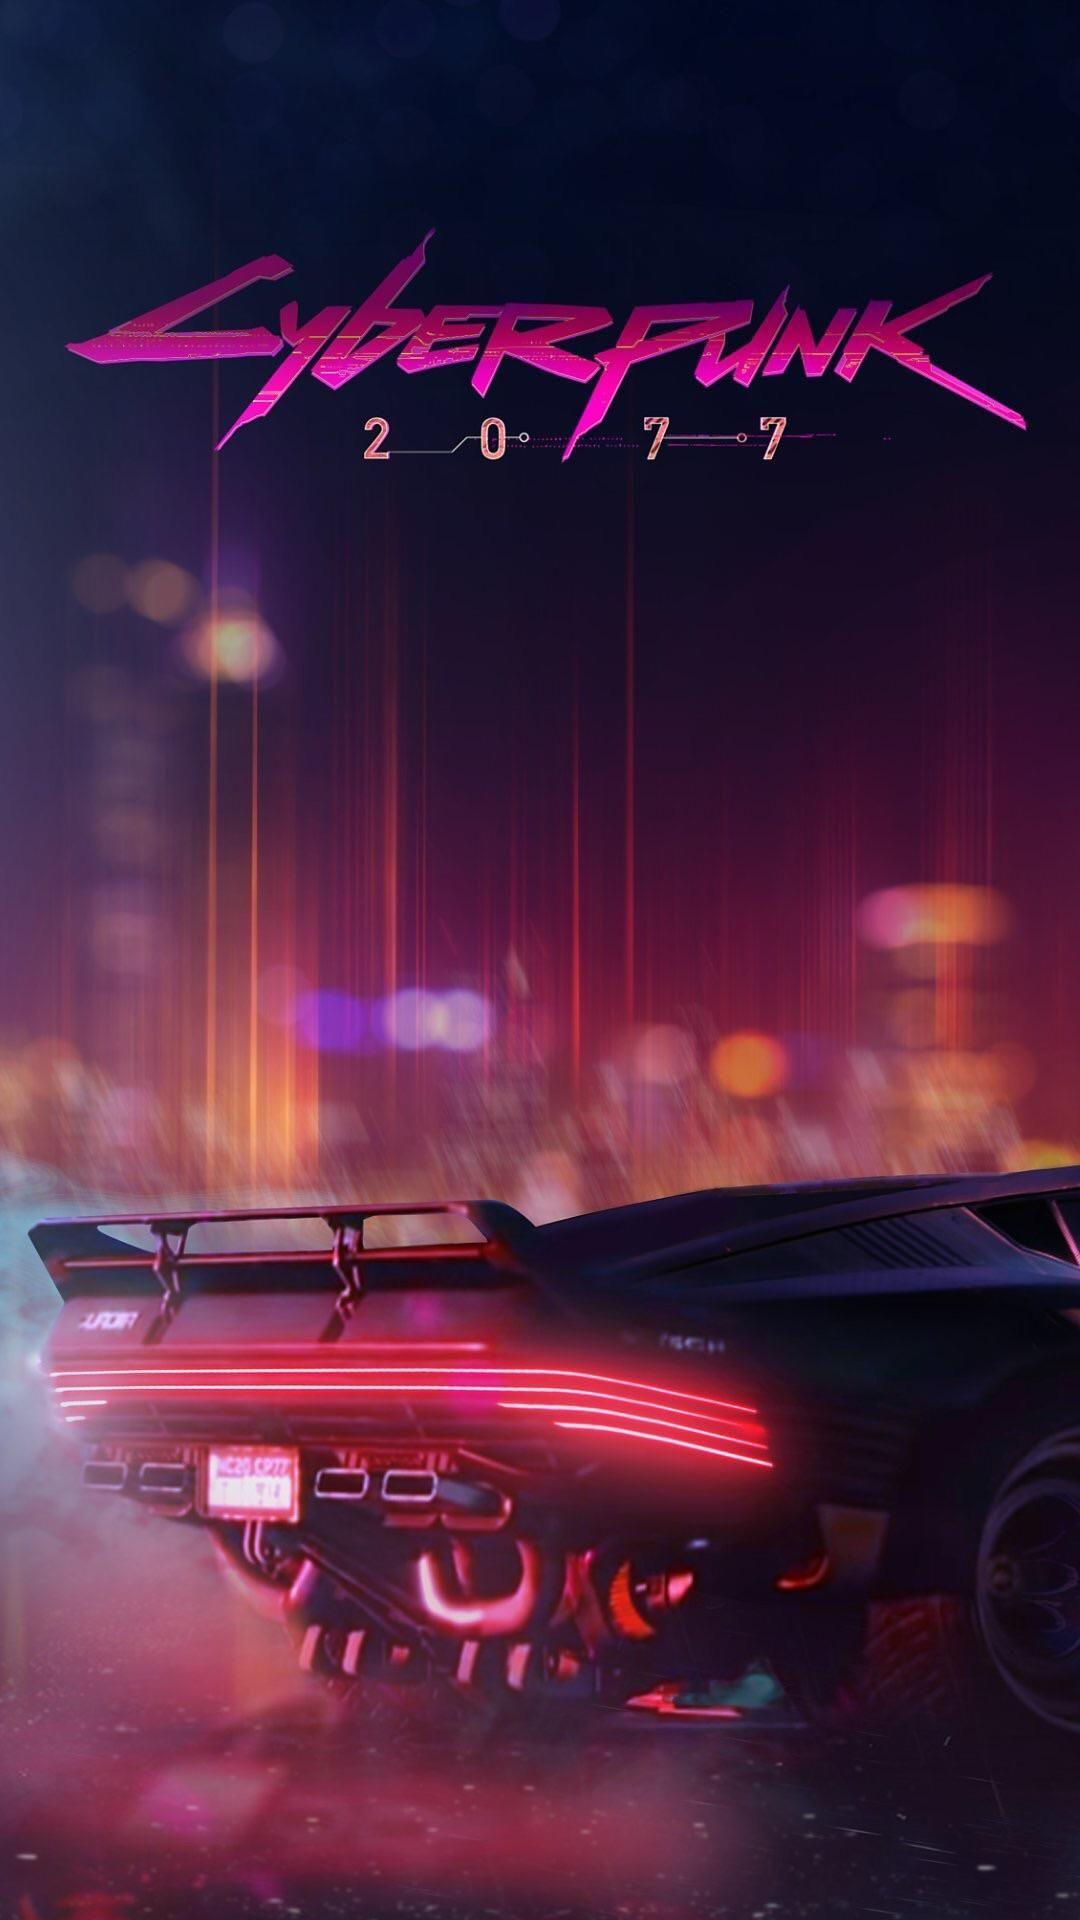 Cyberpunk 2077 Iphone Background Kolpaper Awesome Free Hd Wallpapers